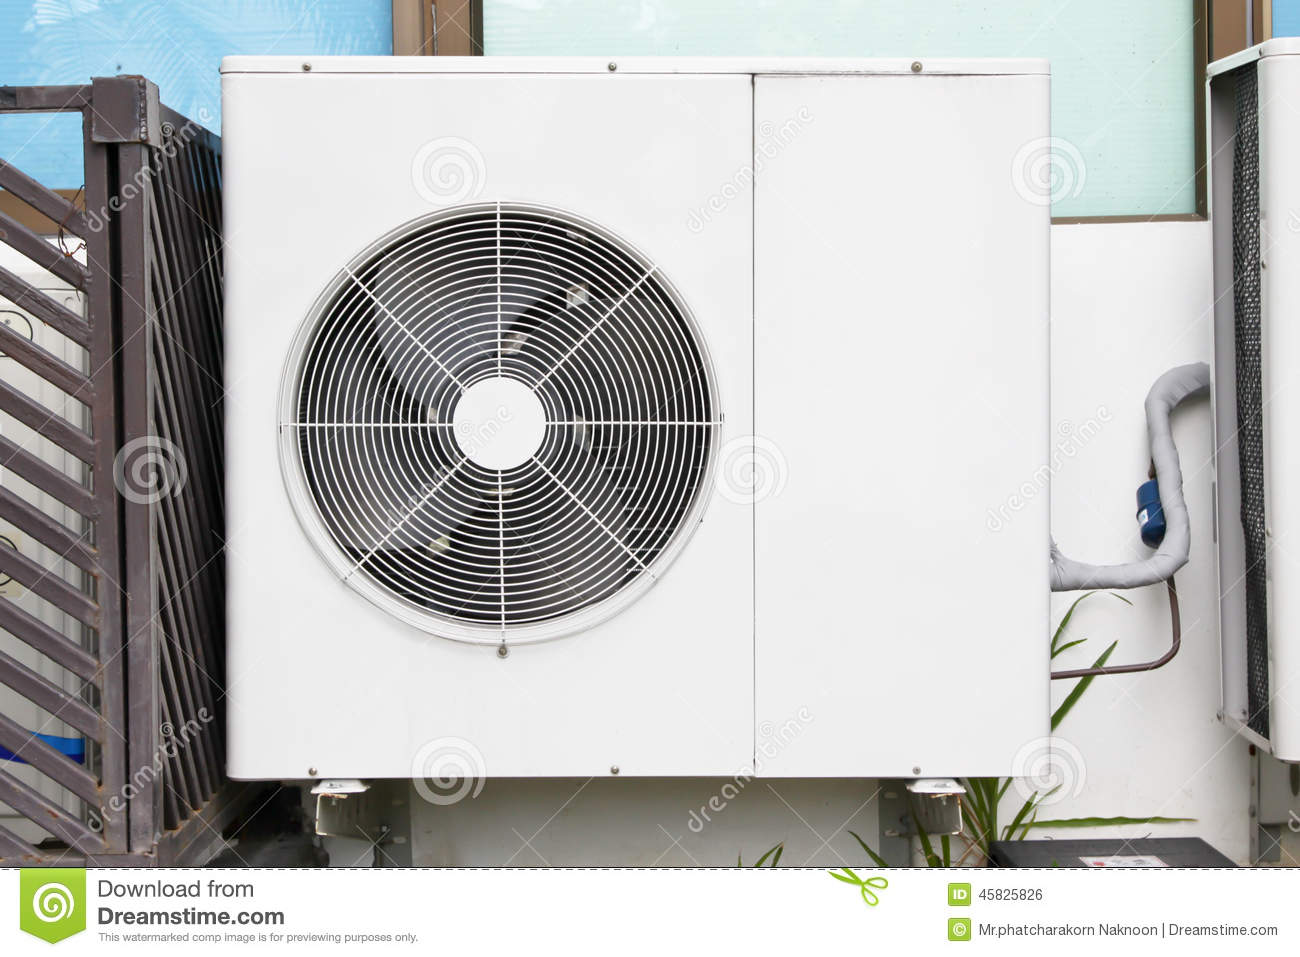 Construction Air Conditioner : Air conditioners installation outside of building near